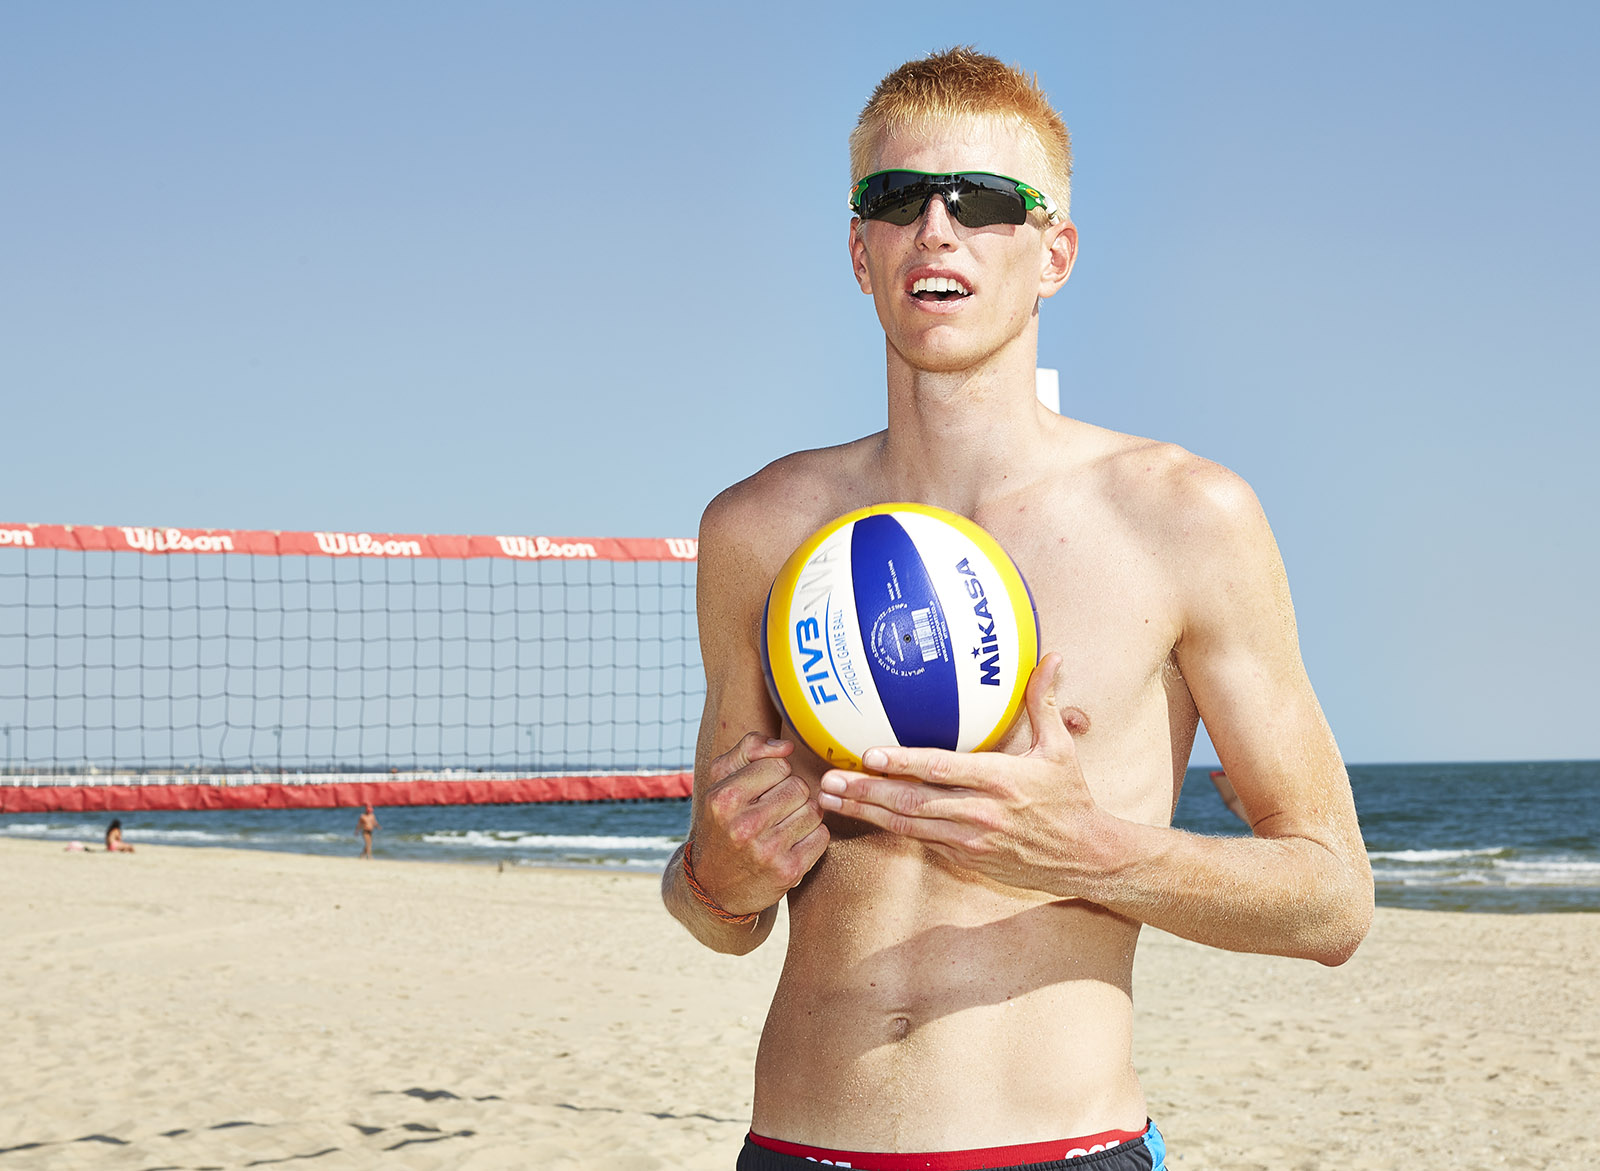 beach_volleyball12